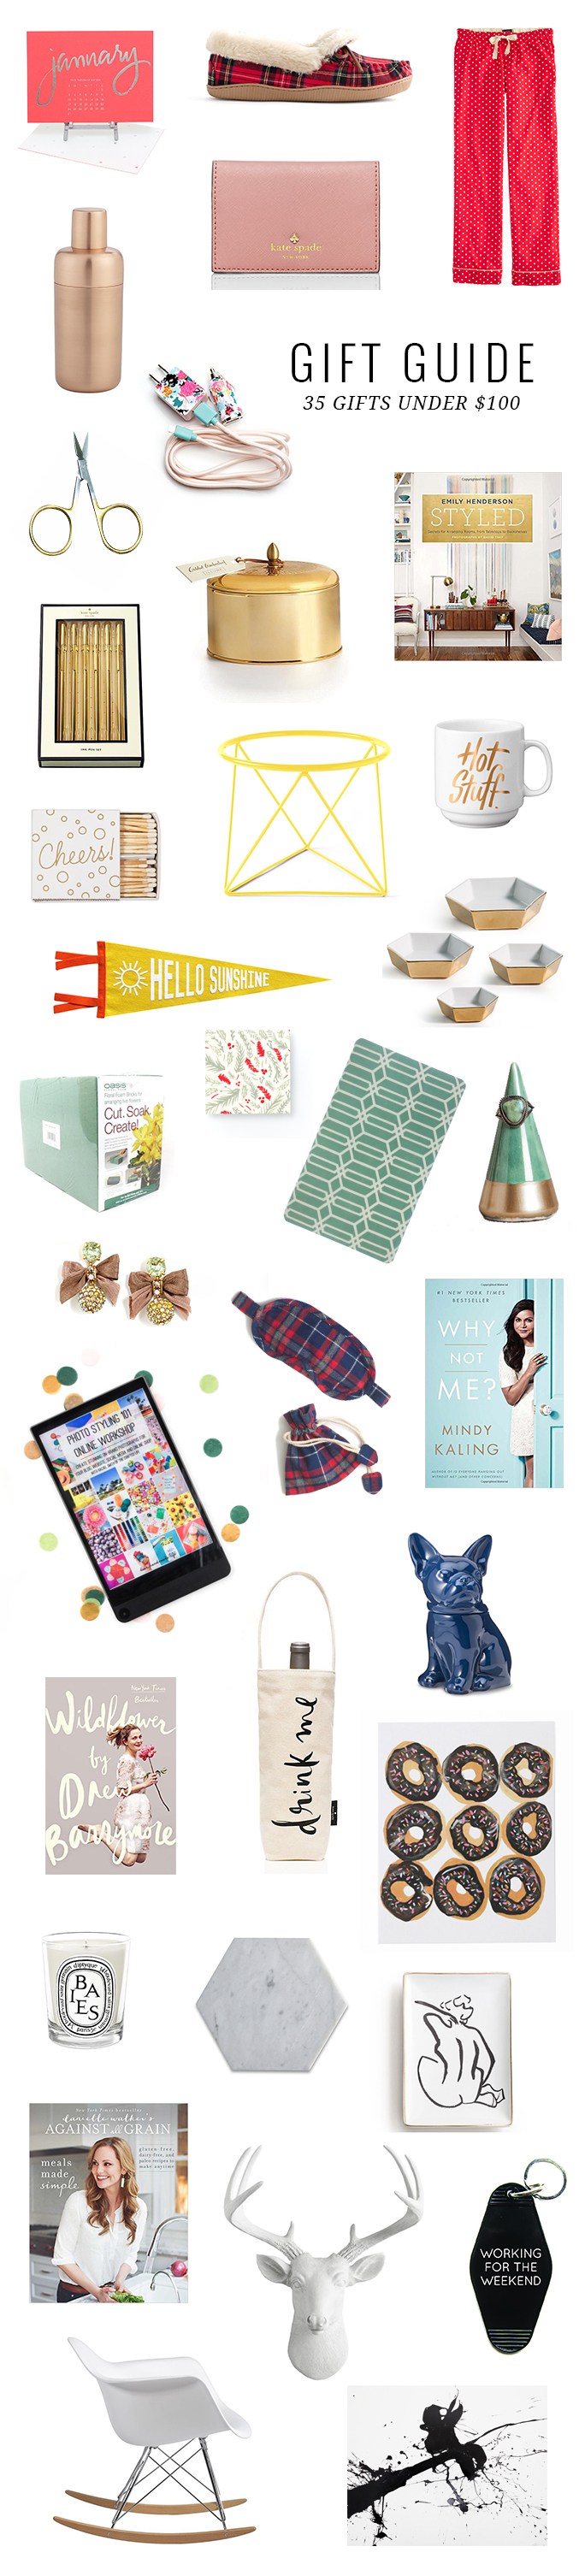 Holiday gift guide gifts under dream green diy